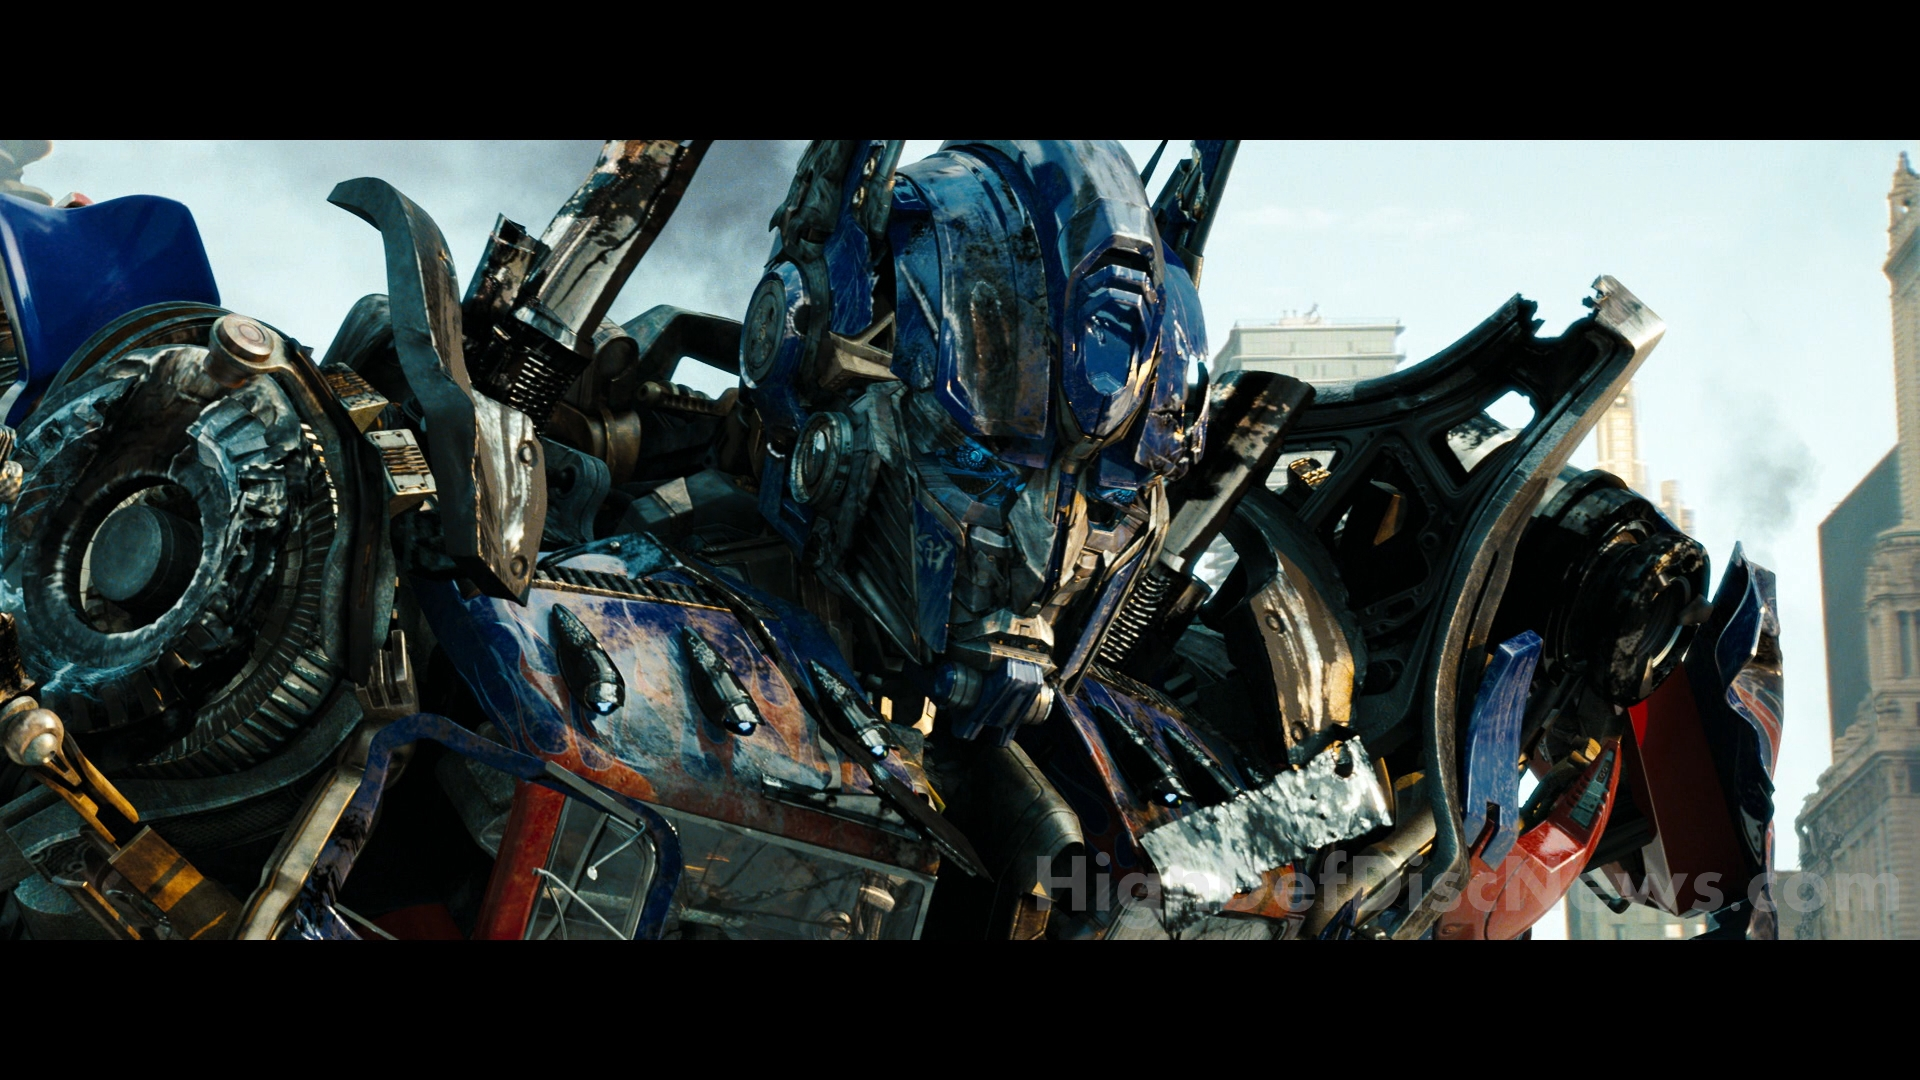 Movies Wallpaper: Optimus Prime Truck Wallpaper High Quality 1920x1080